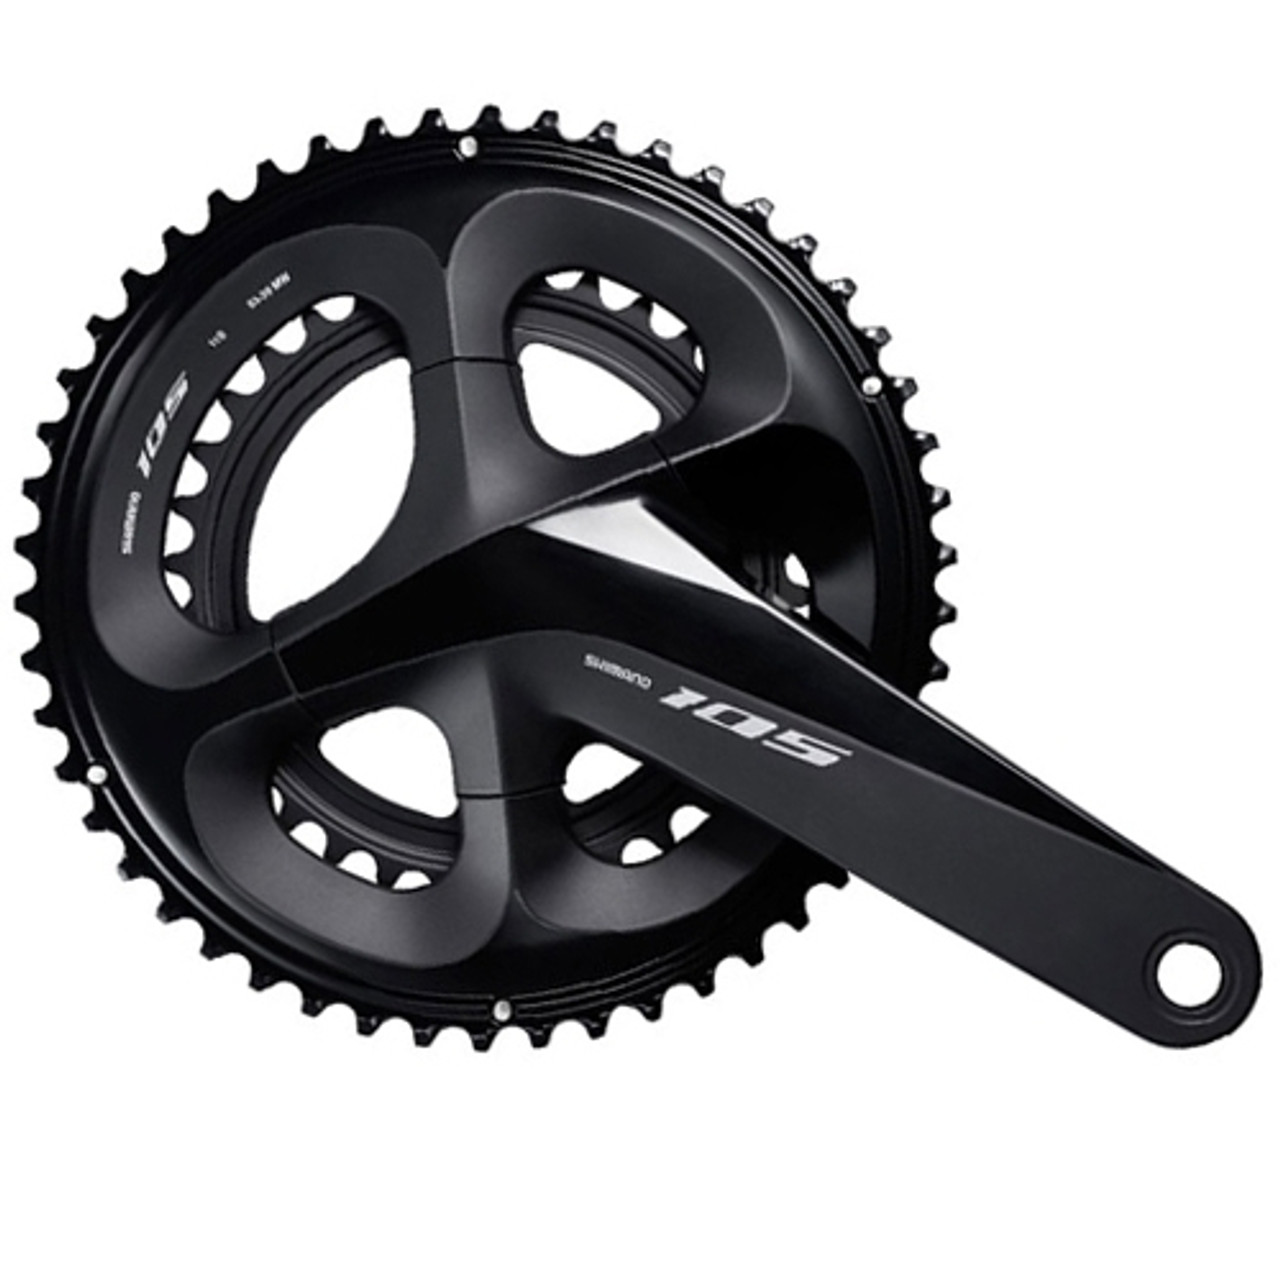 Shimano 105 R7000 11sp Chainset All Sizes